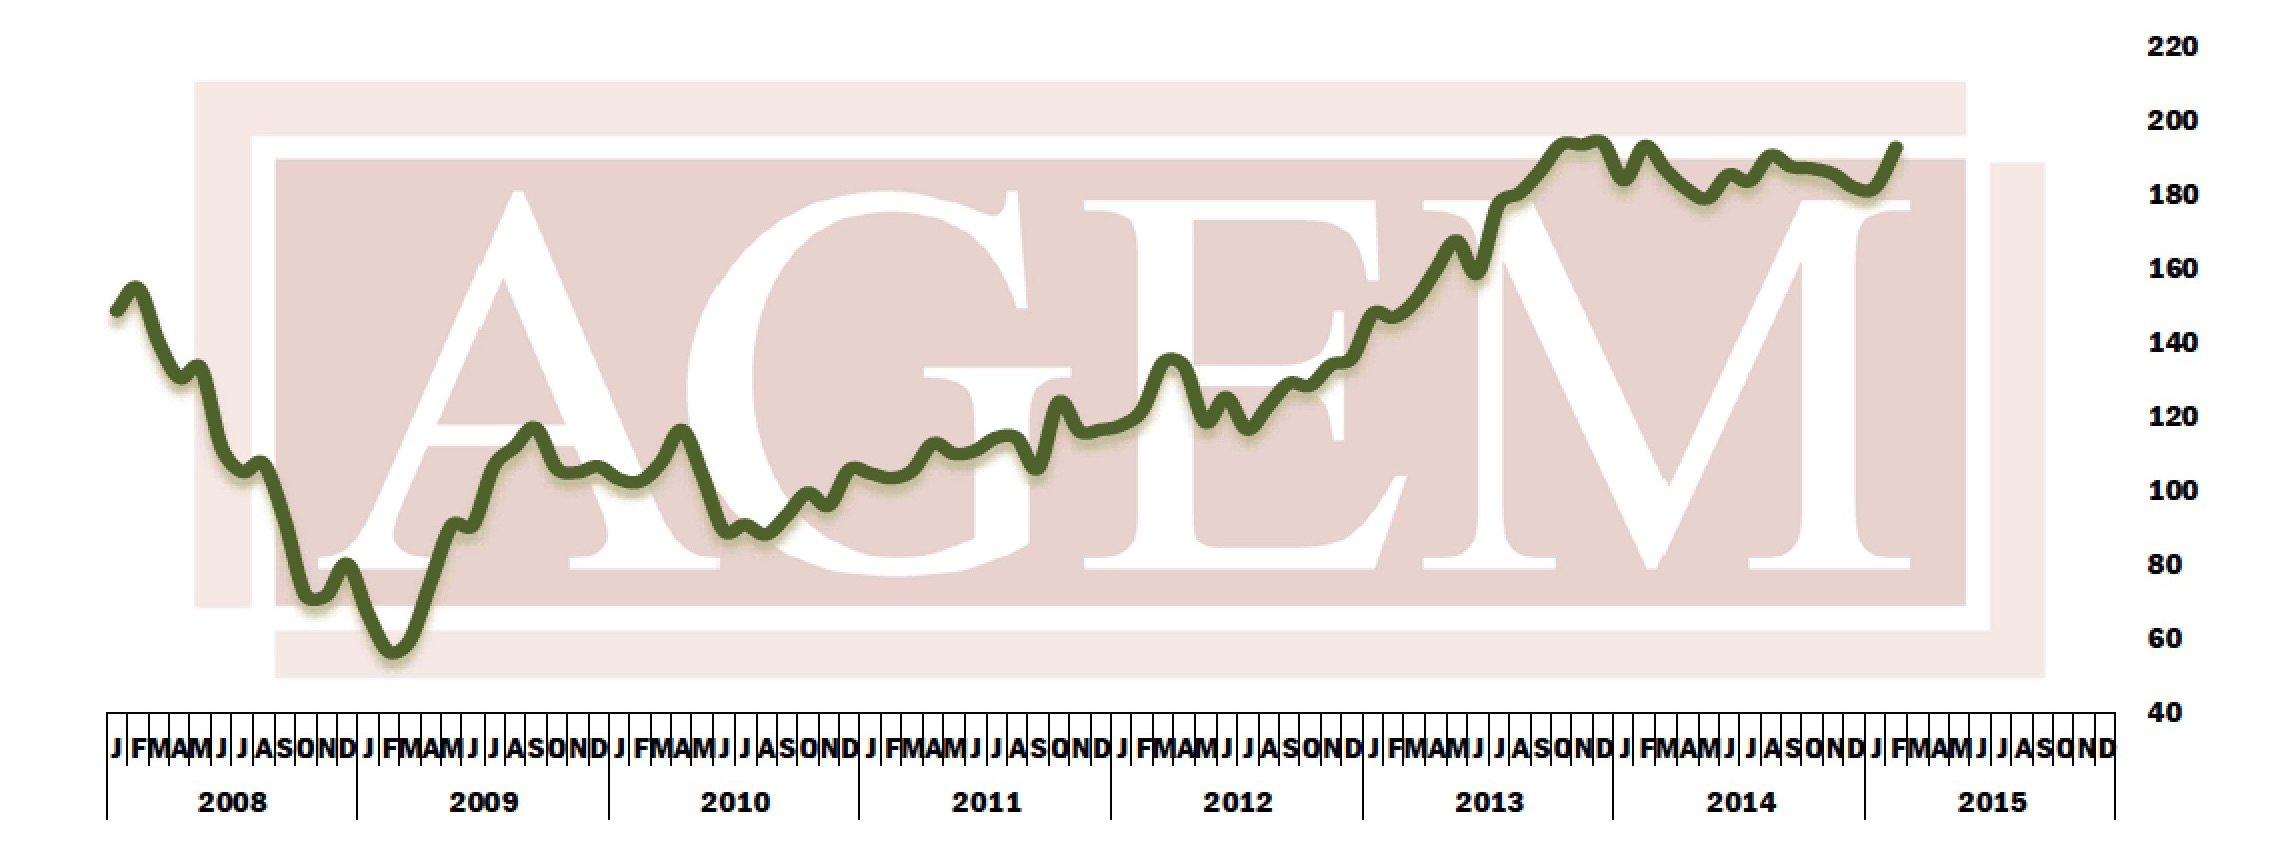 Agem index, February, 2015